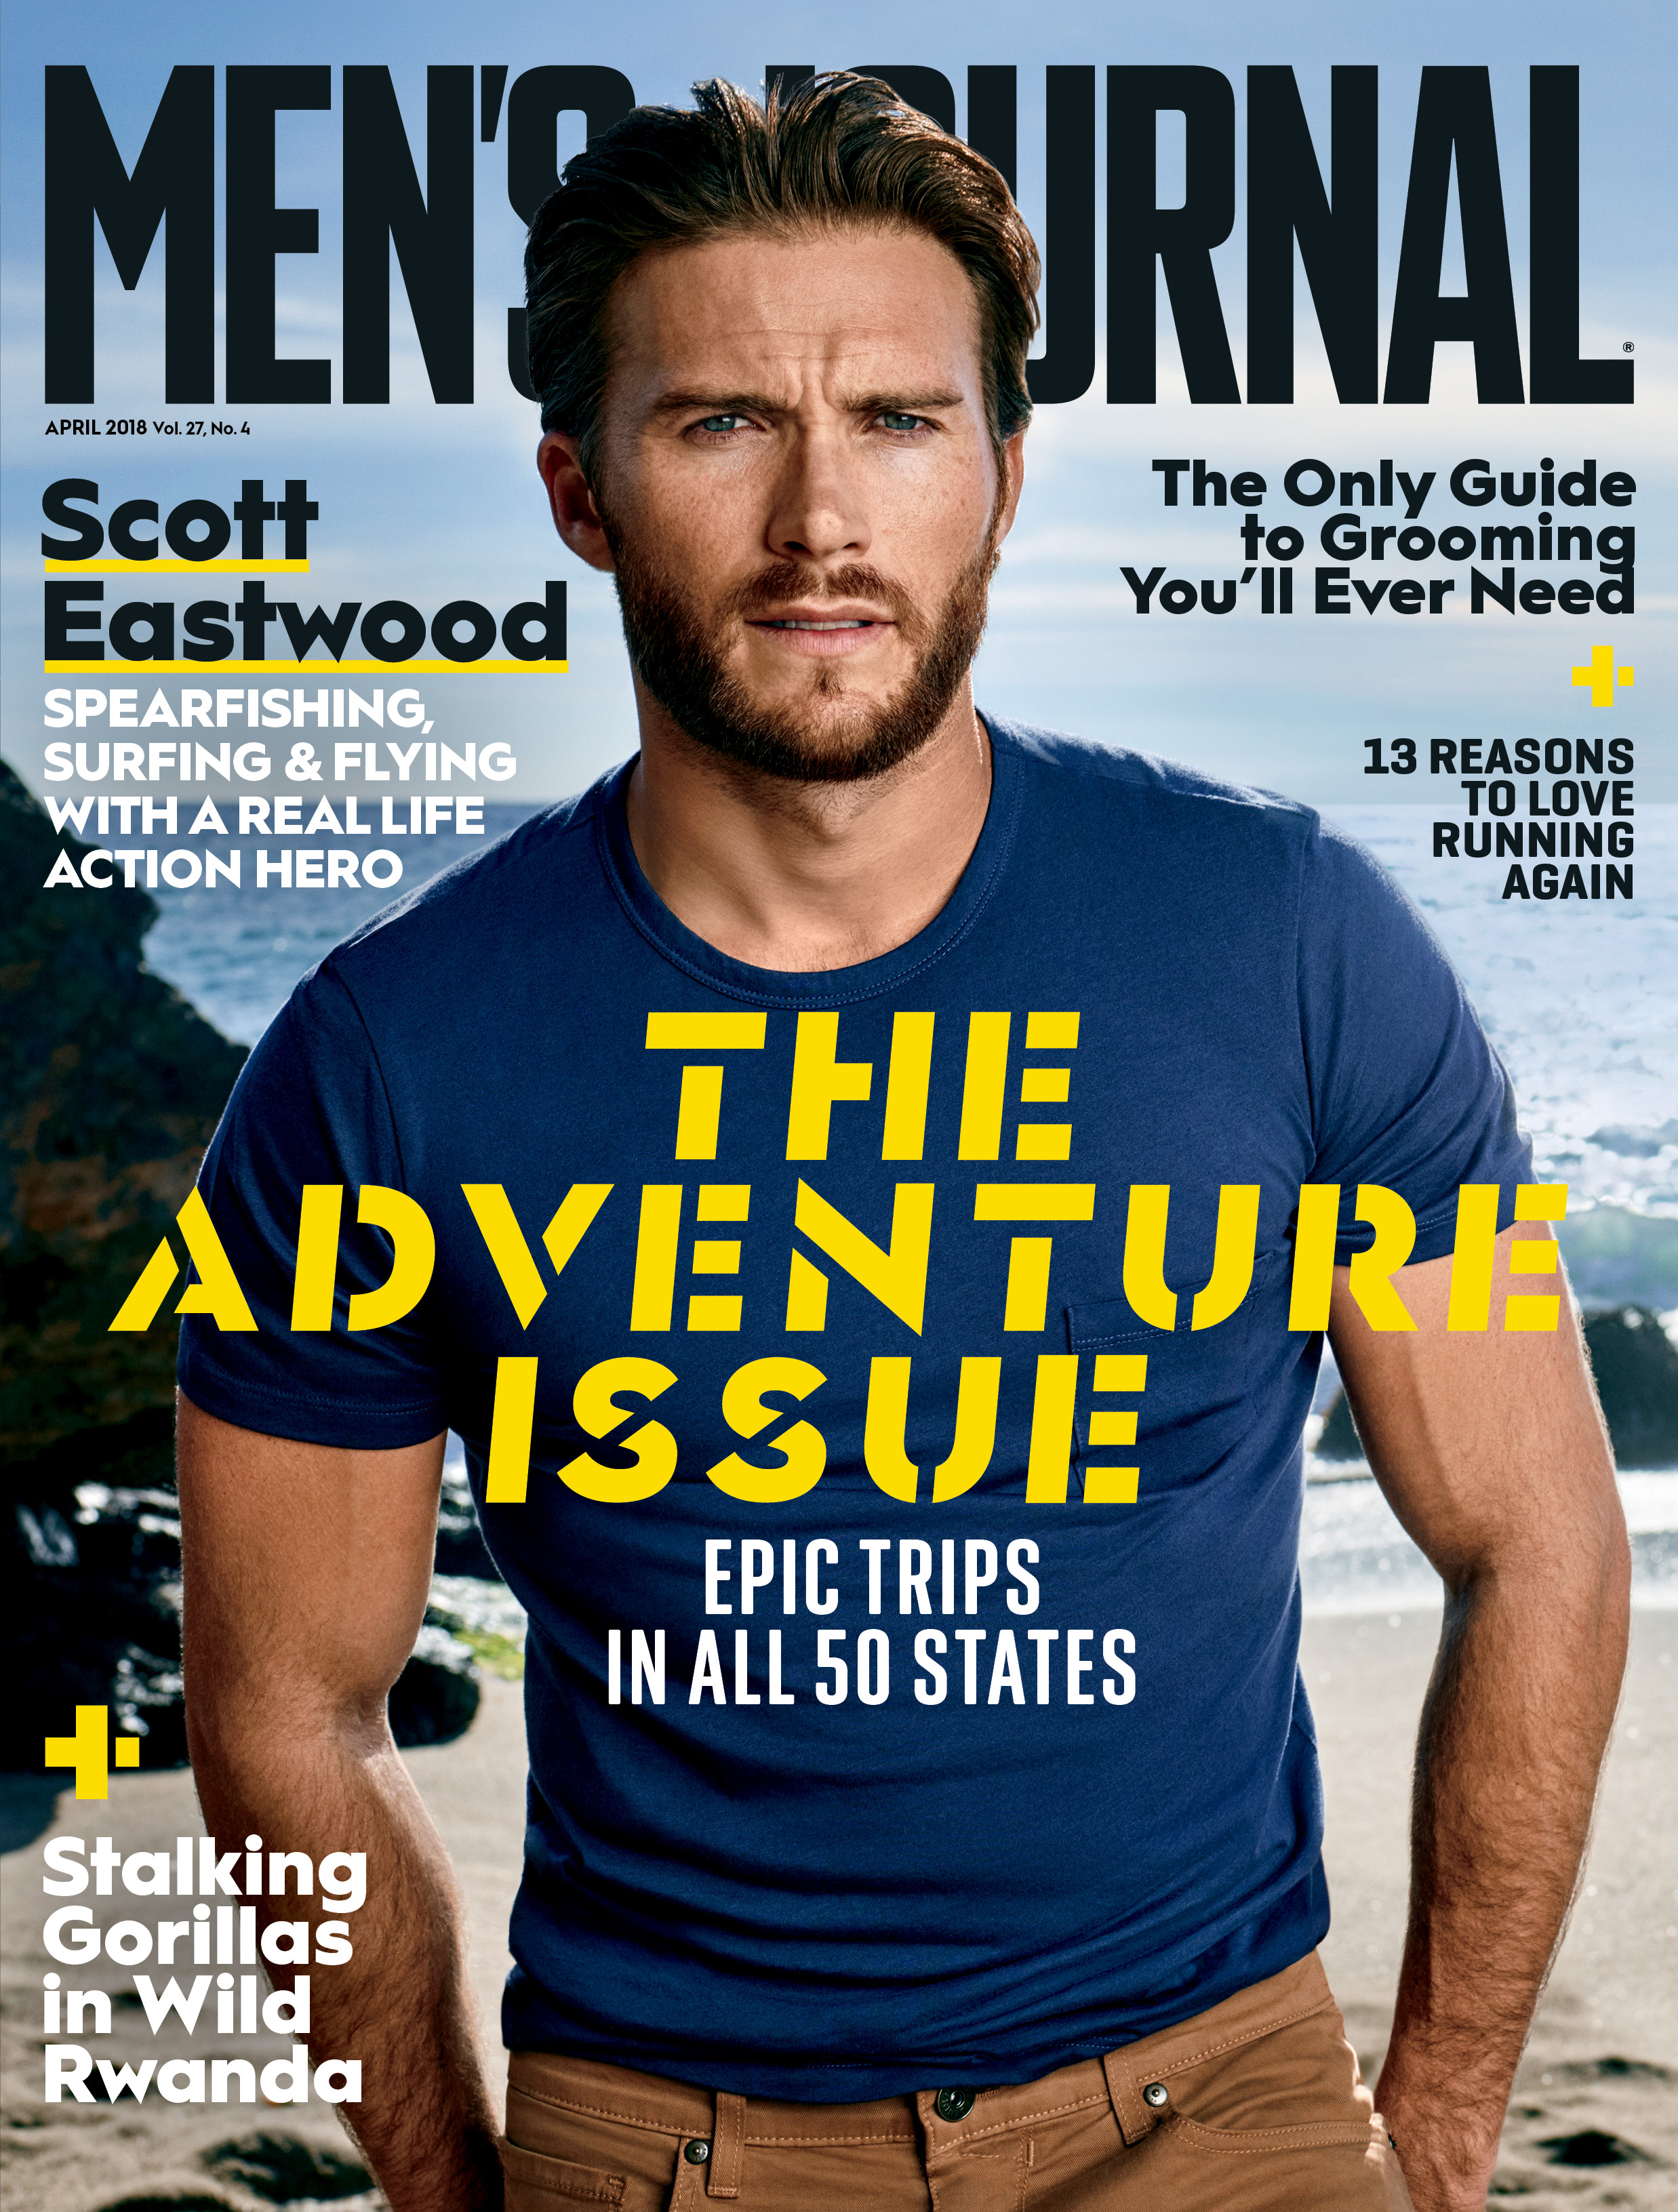 Scott Eastwood photographed for the April 2018 cover of Men's Journal by Jeff Lipsky